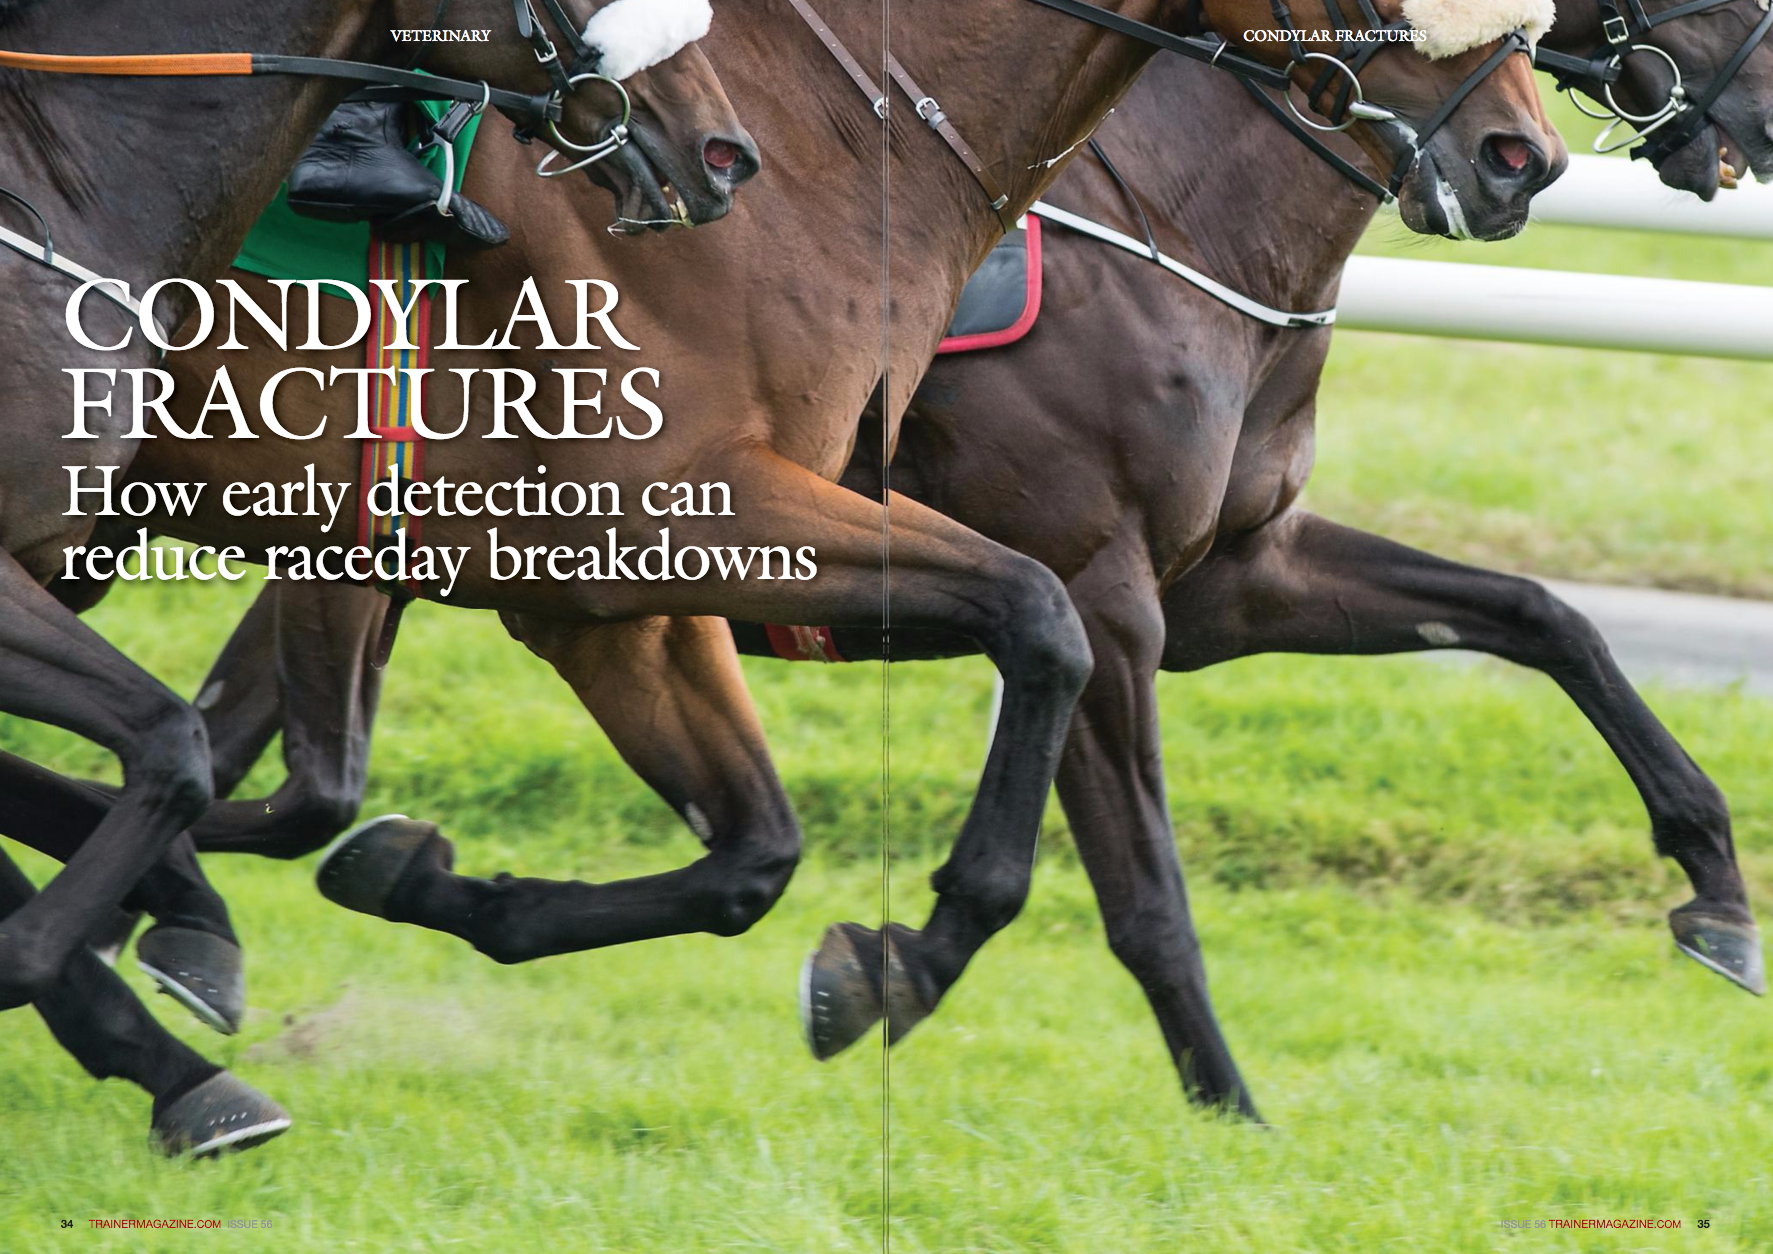 While the thoroughbred racehorse is the perfect example of athletic form and function, due to the biomechanical forces involved at full gallop musculoskeletal failure has the potential to be life-threatening. Aside from the welfare considerations and the loss suffered by connections, catastrophic injuries at the racetrack are highly public events and can be the yardstick by which many judge our sport and industry. WORDS: PETE RAMZAN BVSc(SyDNEy), MRcVS PHOTOS: SHUTTERSTOcK, PROFESSOR cELIA MARR N laboratories around the world much research effort is being directed at finding the causes of bone failure in racehorses, and the imperative to reduce injury rates has driven the USA's recent exploration of artificial surfaces. Despite this, scientific solutions – whether in the form of lowinjury training programmes, low-risk track surfaces, or easily applicable screening tests – remain over the horizon. However, the key to reducing injury rates could actually be in our grasp already, and could simply involve the application of some 'front-line' veterinary common sense. The most common cause of raceday fatalities worldwide is fetlock breakdown, with condylar fracture (involving the lower end of the cannon bone at the level of the fetlock) being the most important injury at this site. Although 'broken' legs arising from condylar fractures are acute events occurring at high speed, we know that actually in most cases they are the end result of a process that develops over the preceding weeks and sometimes months. Condylar fractures typically start as small fissures at the lower end of the cannon bone, and if trained on undetected these short cracks will ultimately propagate to true fracture when the leg is subjected to the huge loads associated with galloping. While this has been common knowledge in the veterinary world for some time, very little hard data that might assist vets with early diagnosis and better management have actually been collated on the clinical features ass